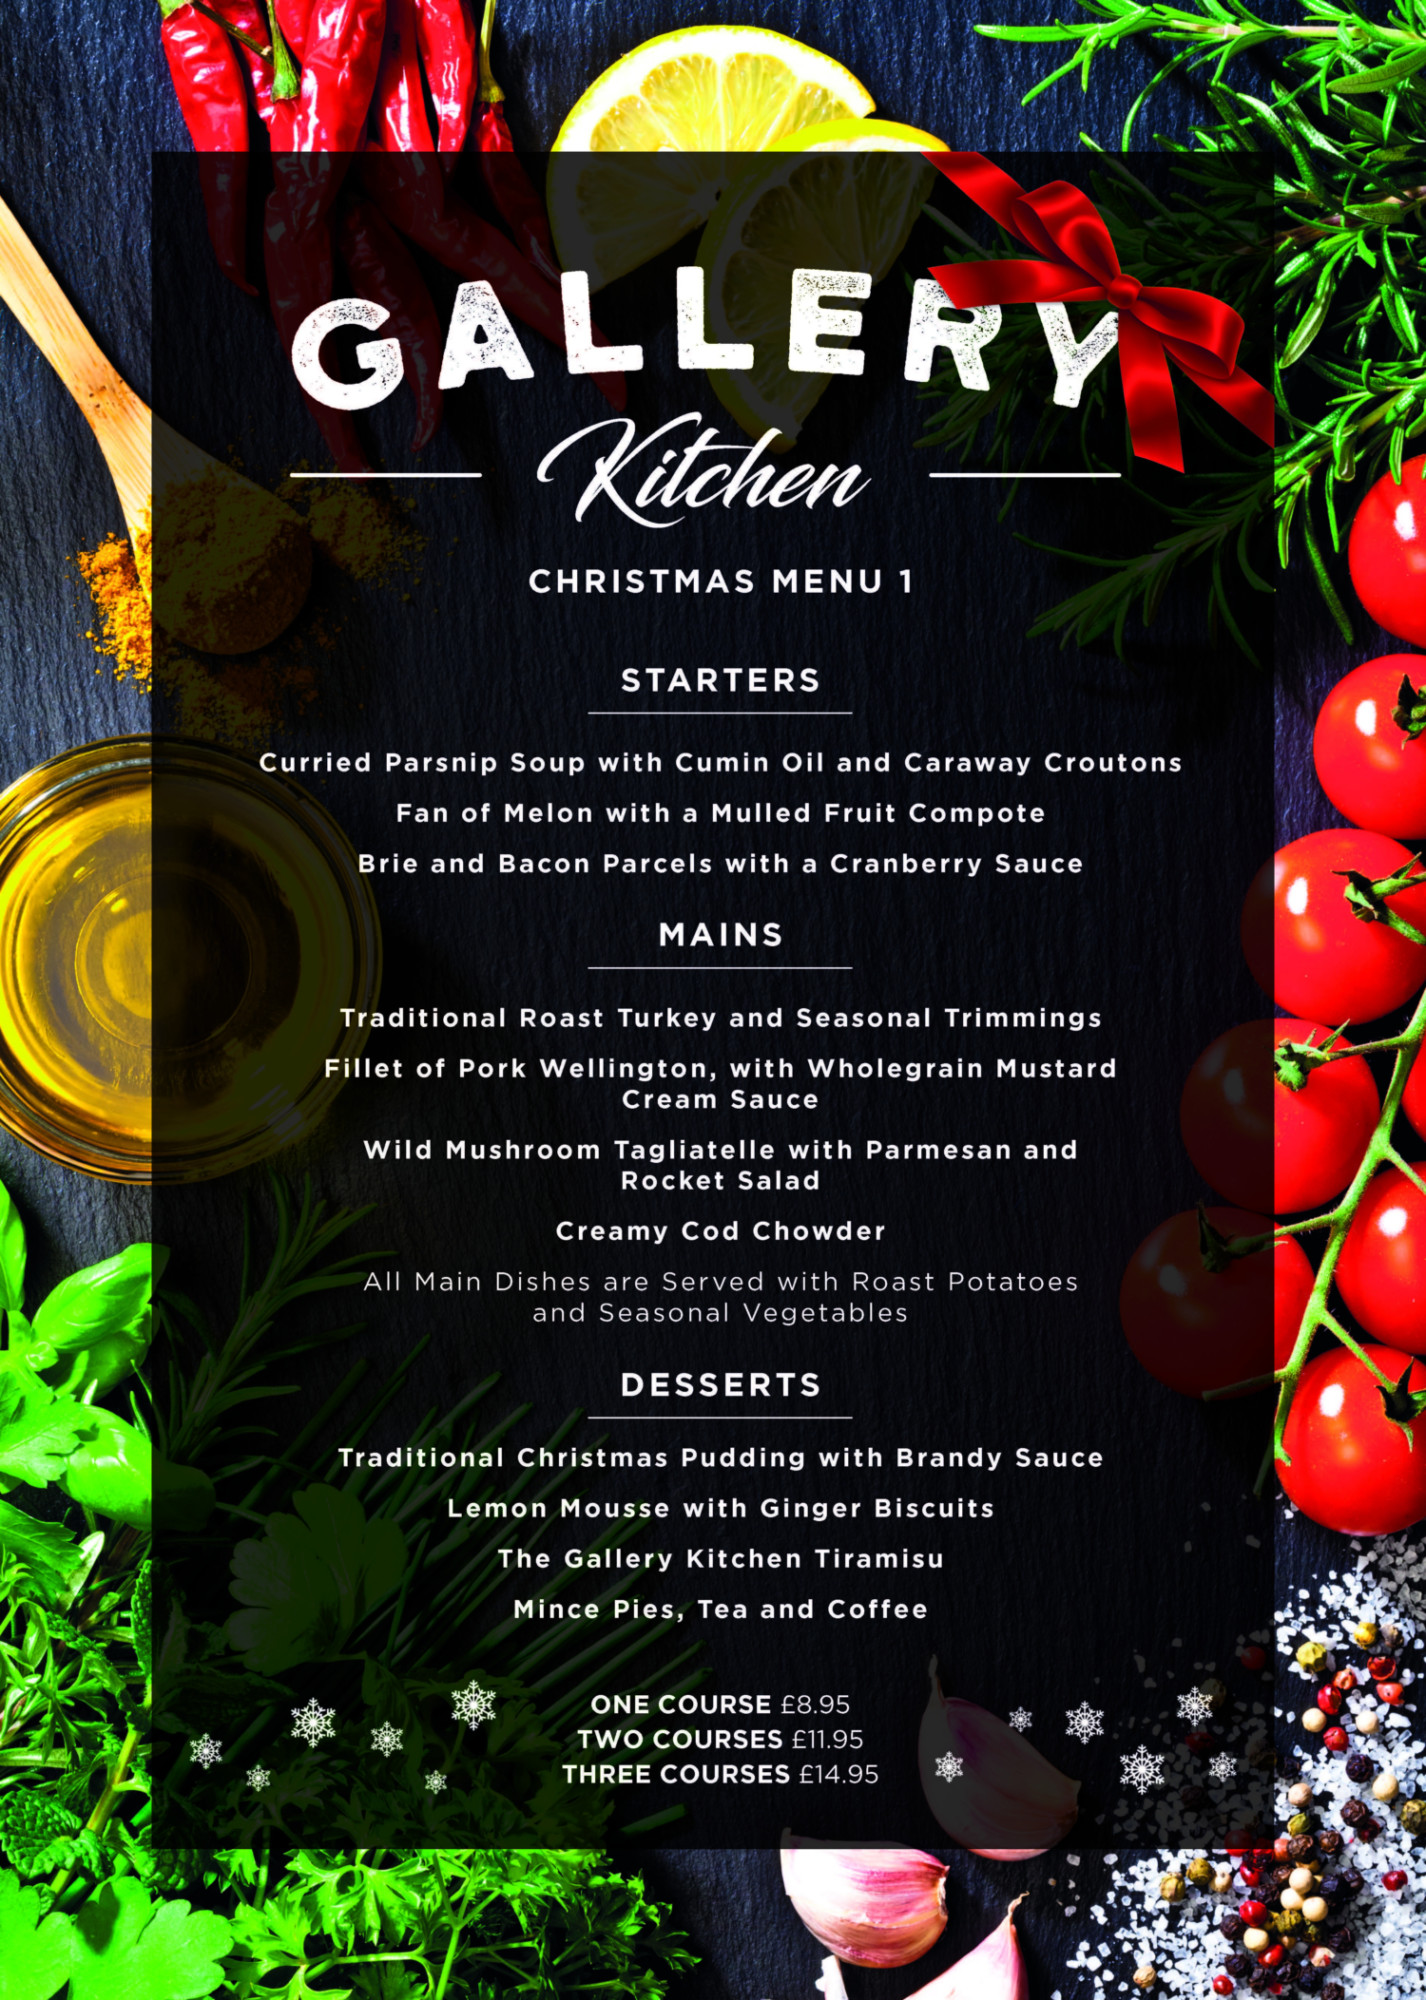 Gallery Restaurant Christmas Menu 1